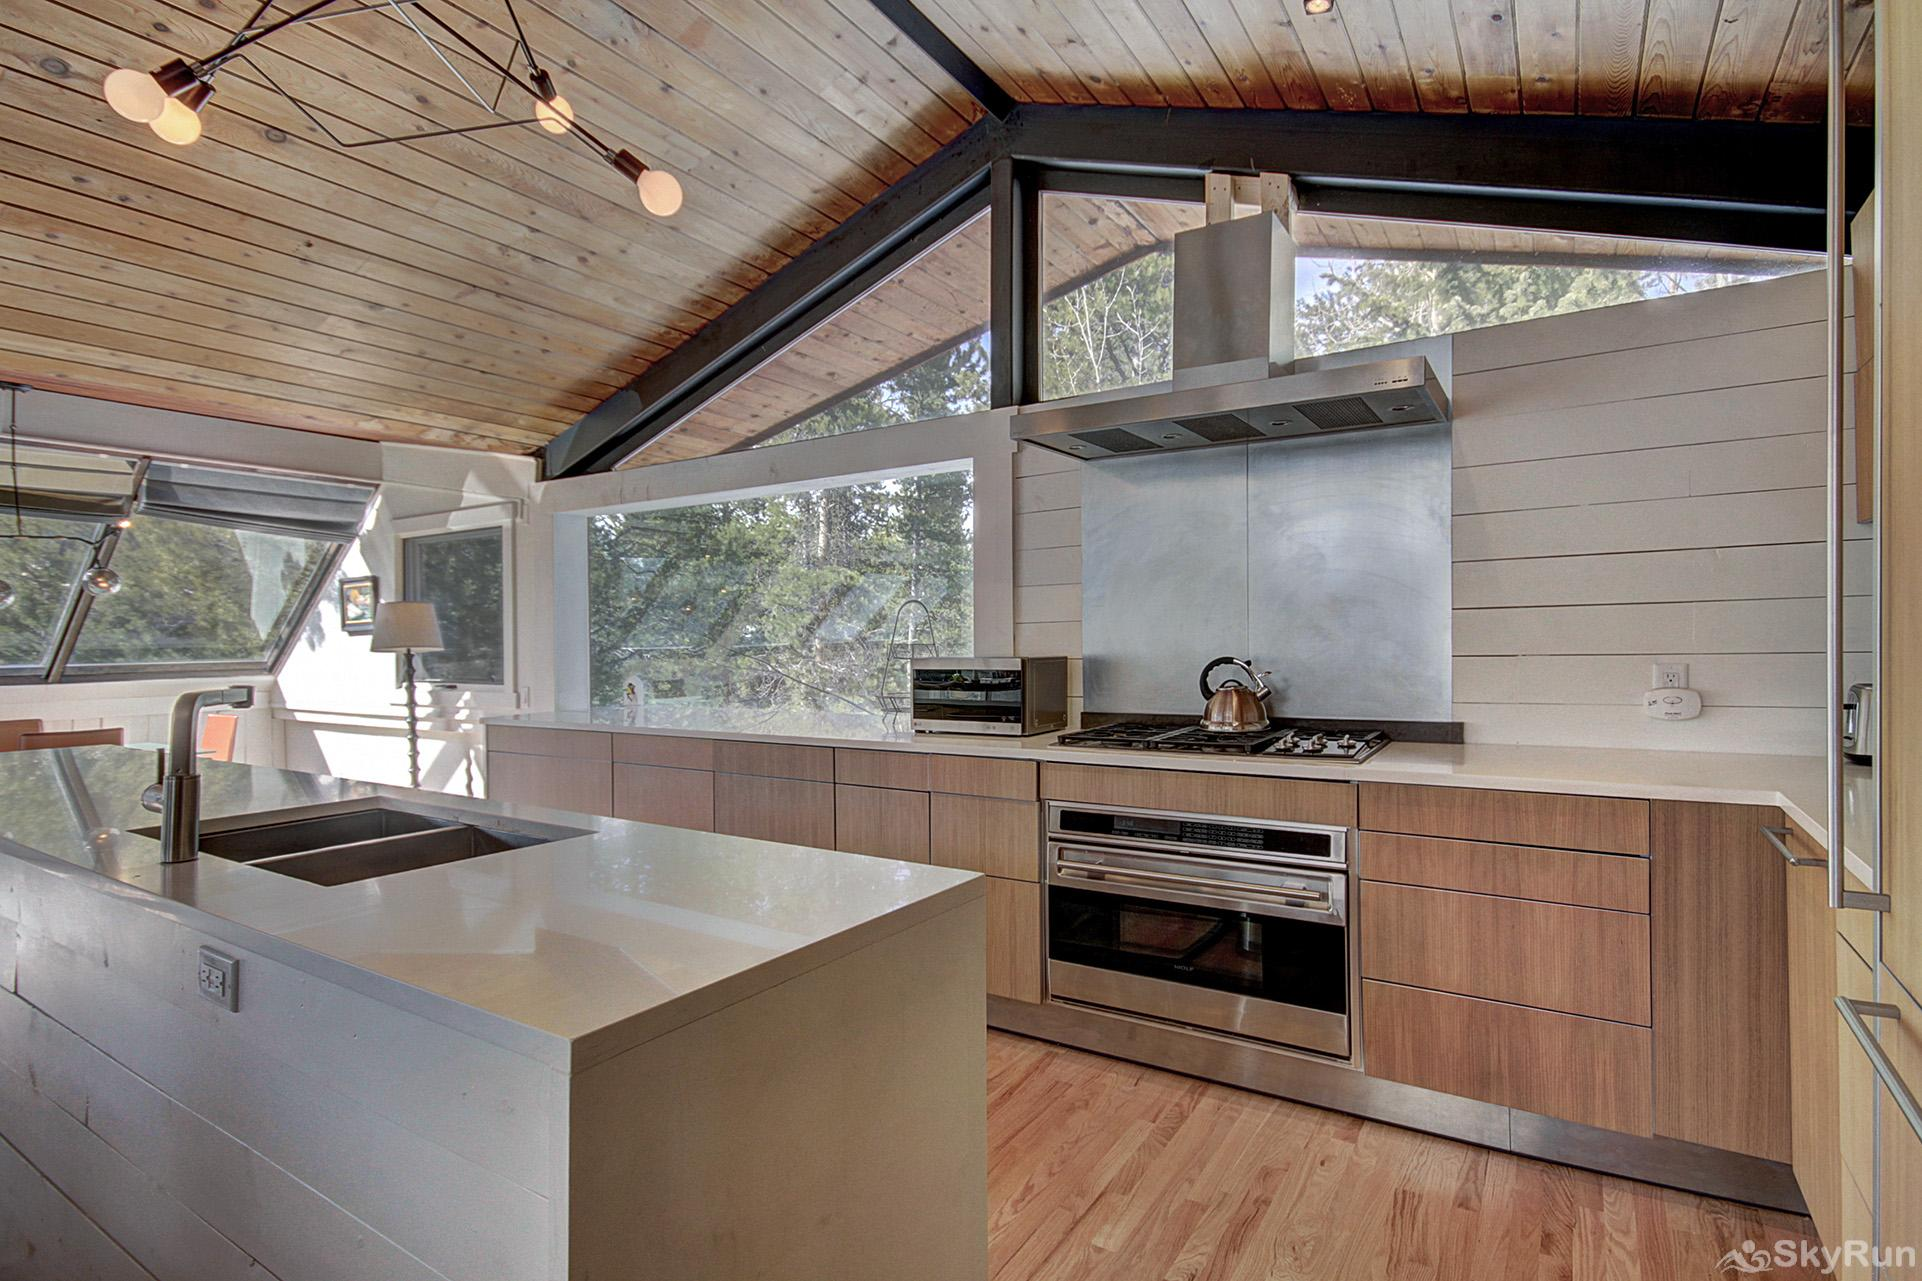 Elk Horn Cabin Prepare tasty home cooked meals with the convenience of a fully equipped kitchen